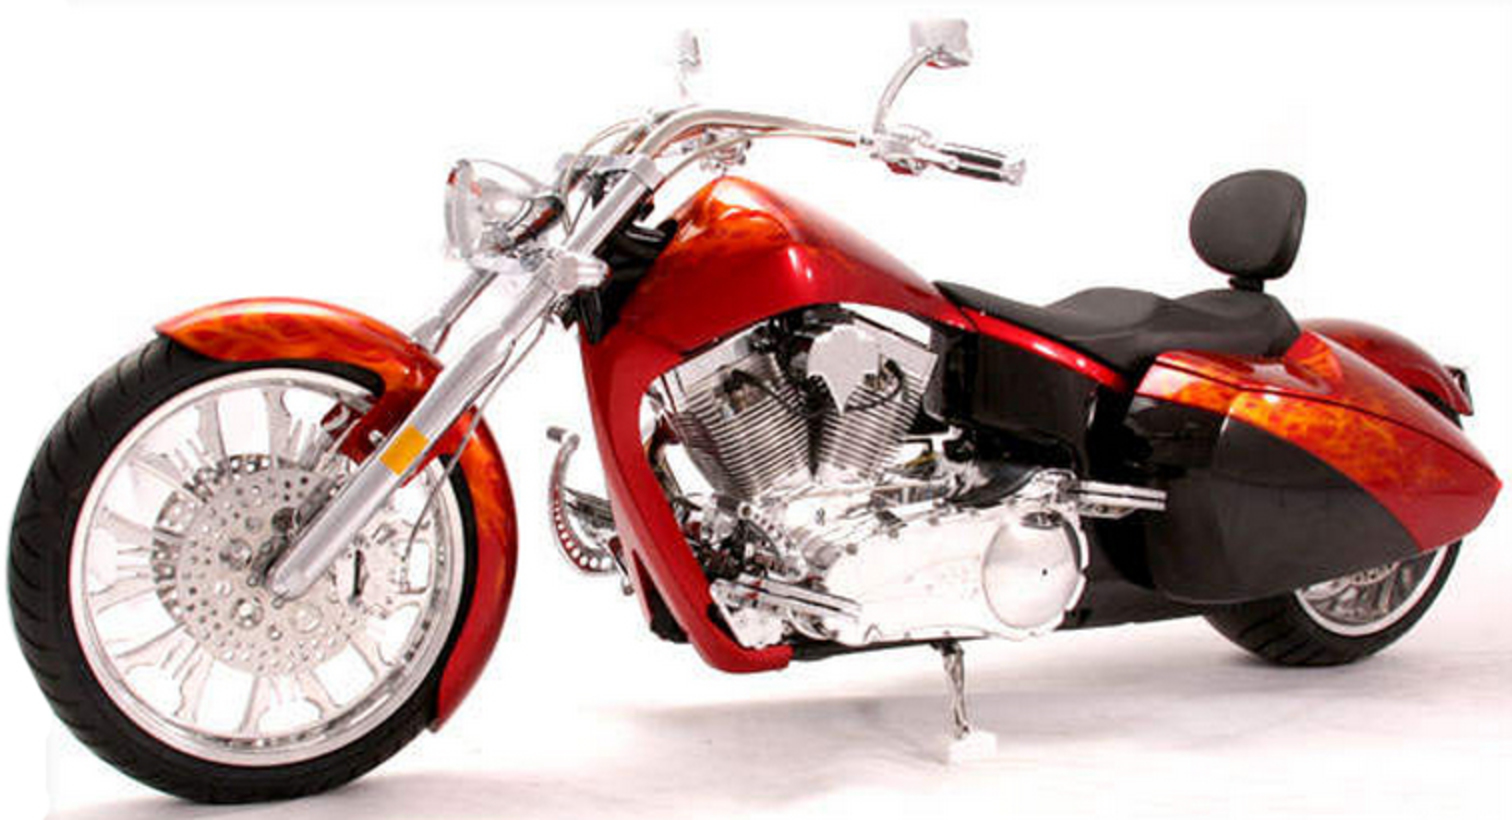 Topworldauto Photos Of Big Bear Choppers Gtx Photo Galleries Australia Cruiser Bike Reviews